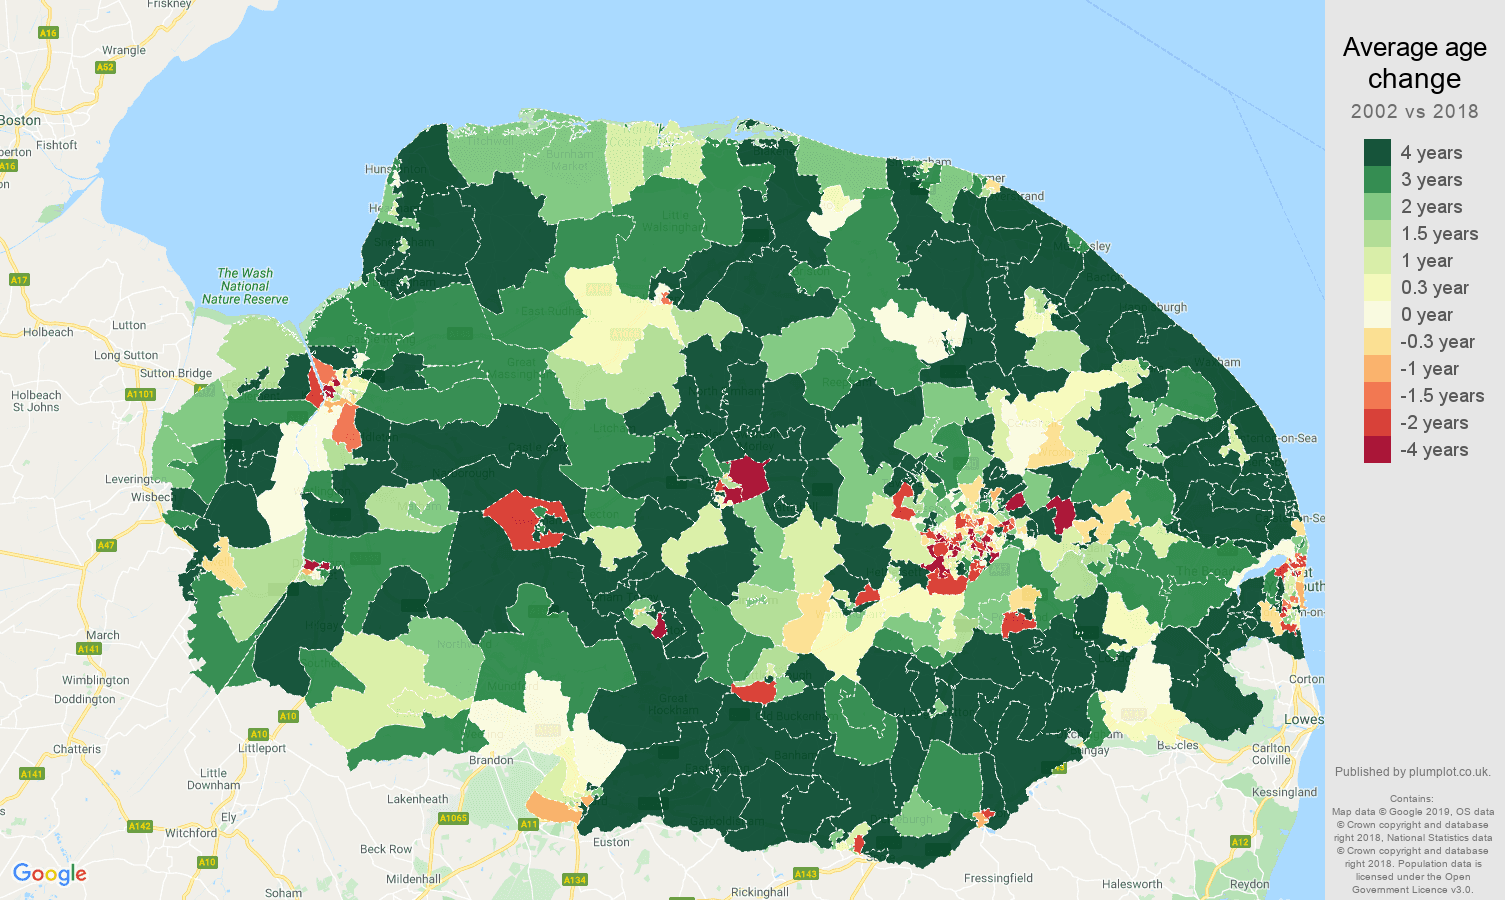 Norfolk average age change map